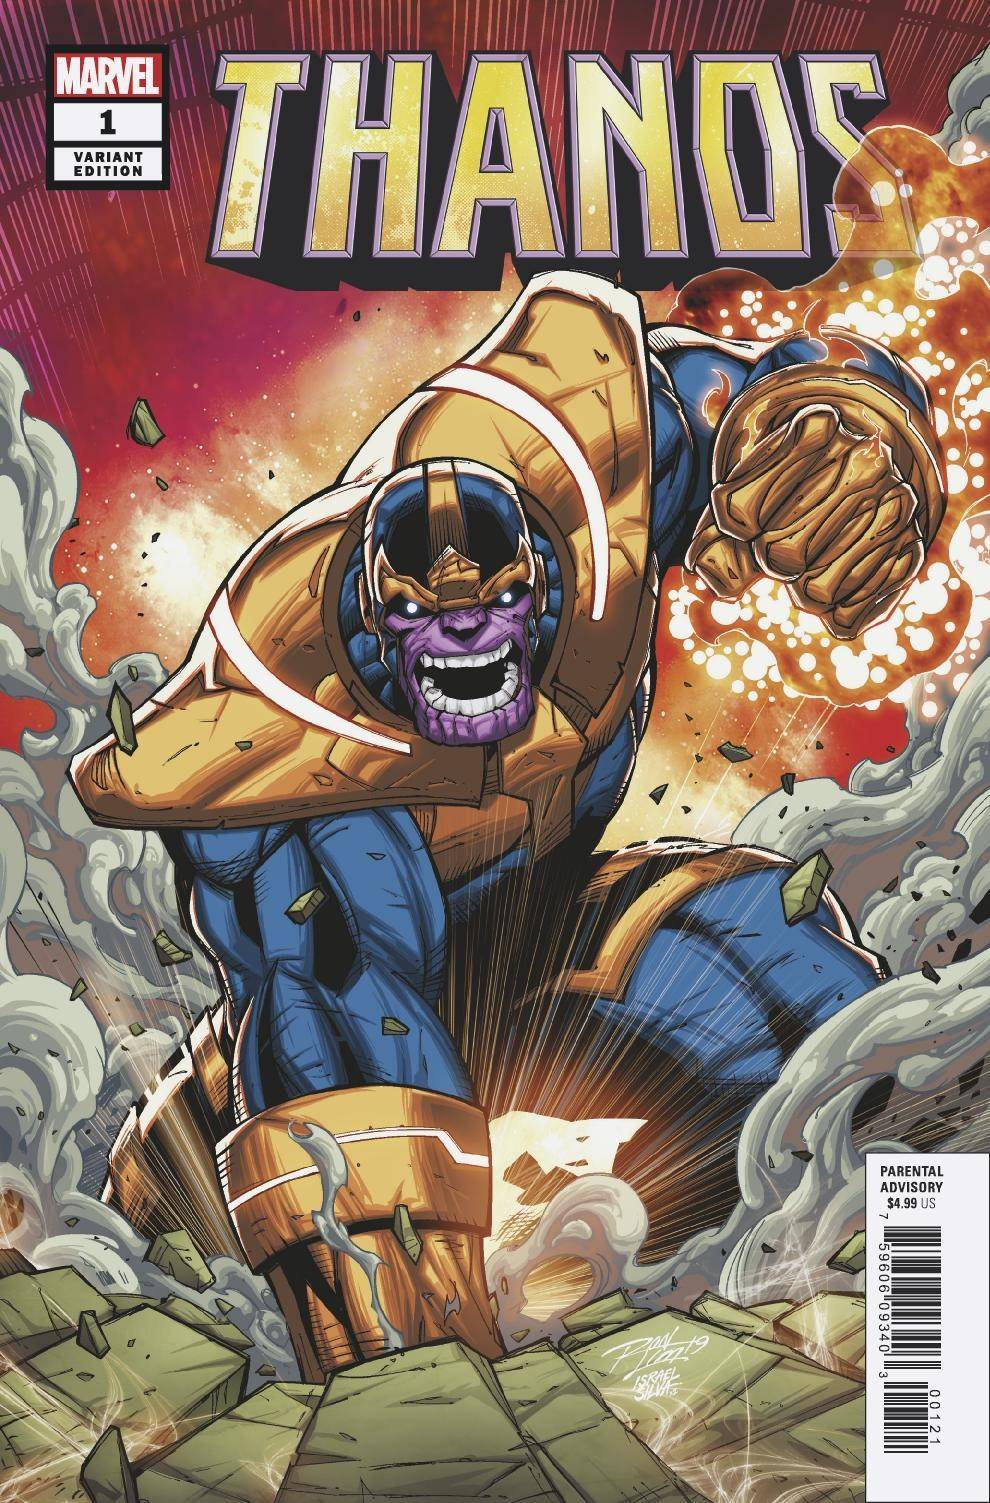 04/24/2019 THANOS #1 (OF 6) LIM VAR